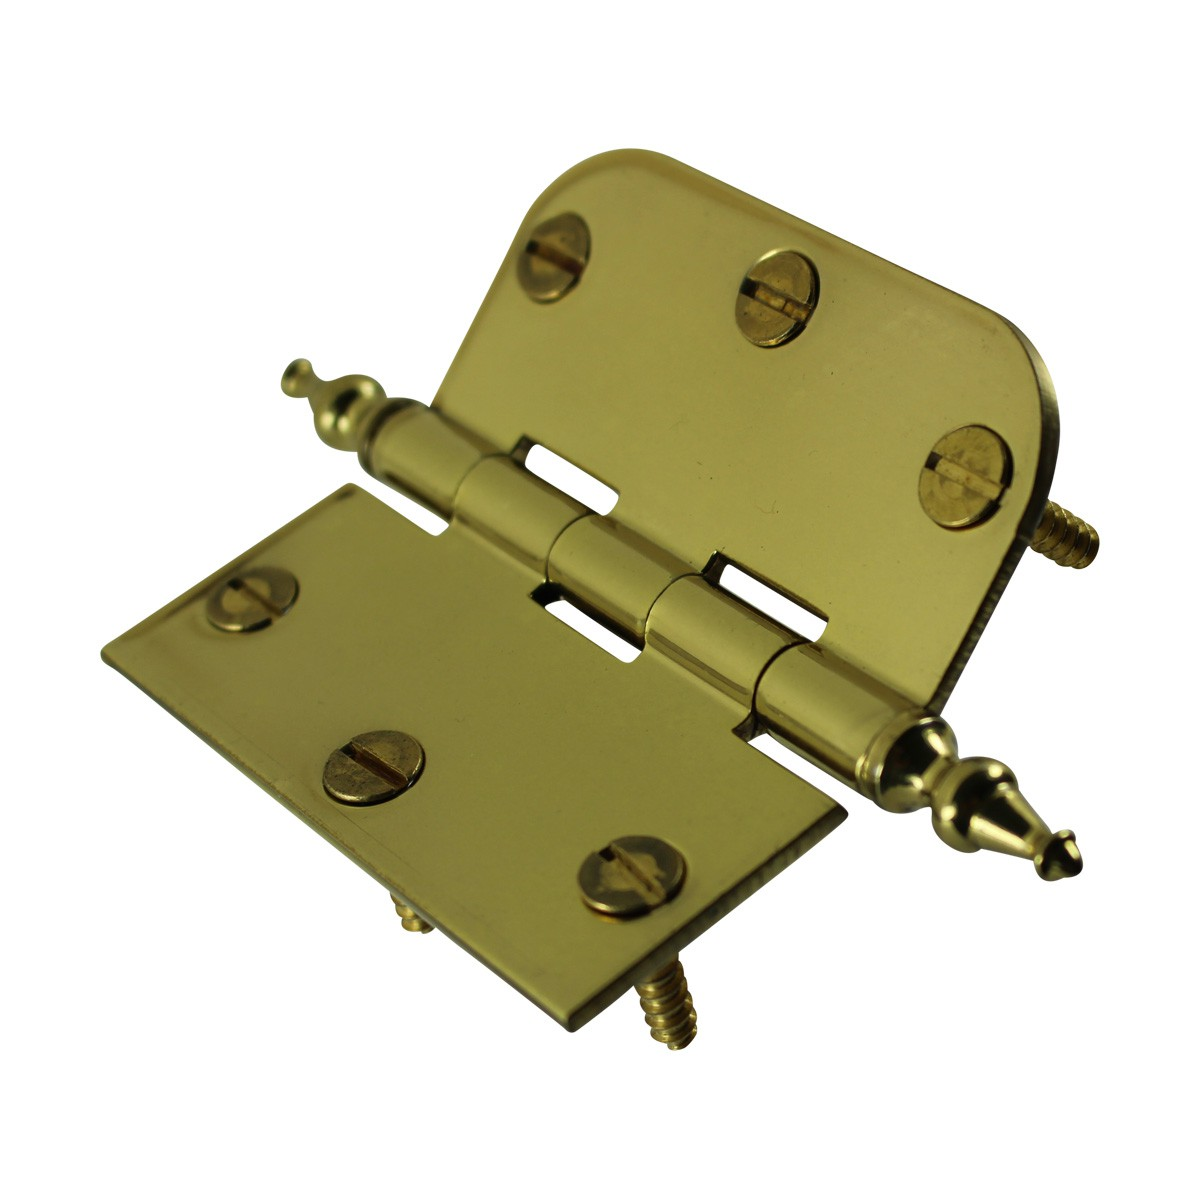 Bright Solid Brass Cabinet Hinge 3 x 3 Temple Tip Door Hinges Door Hinge Solid Brass Hinge